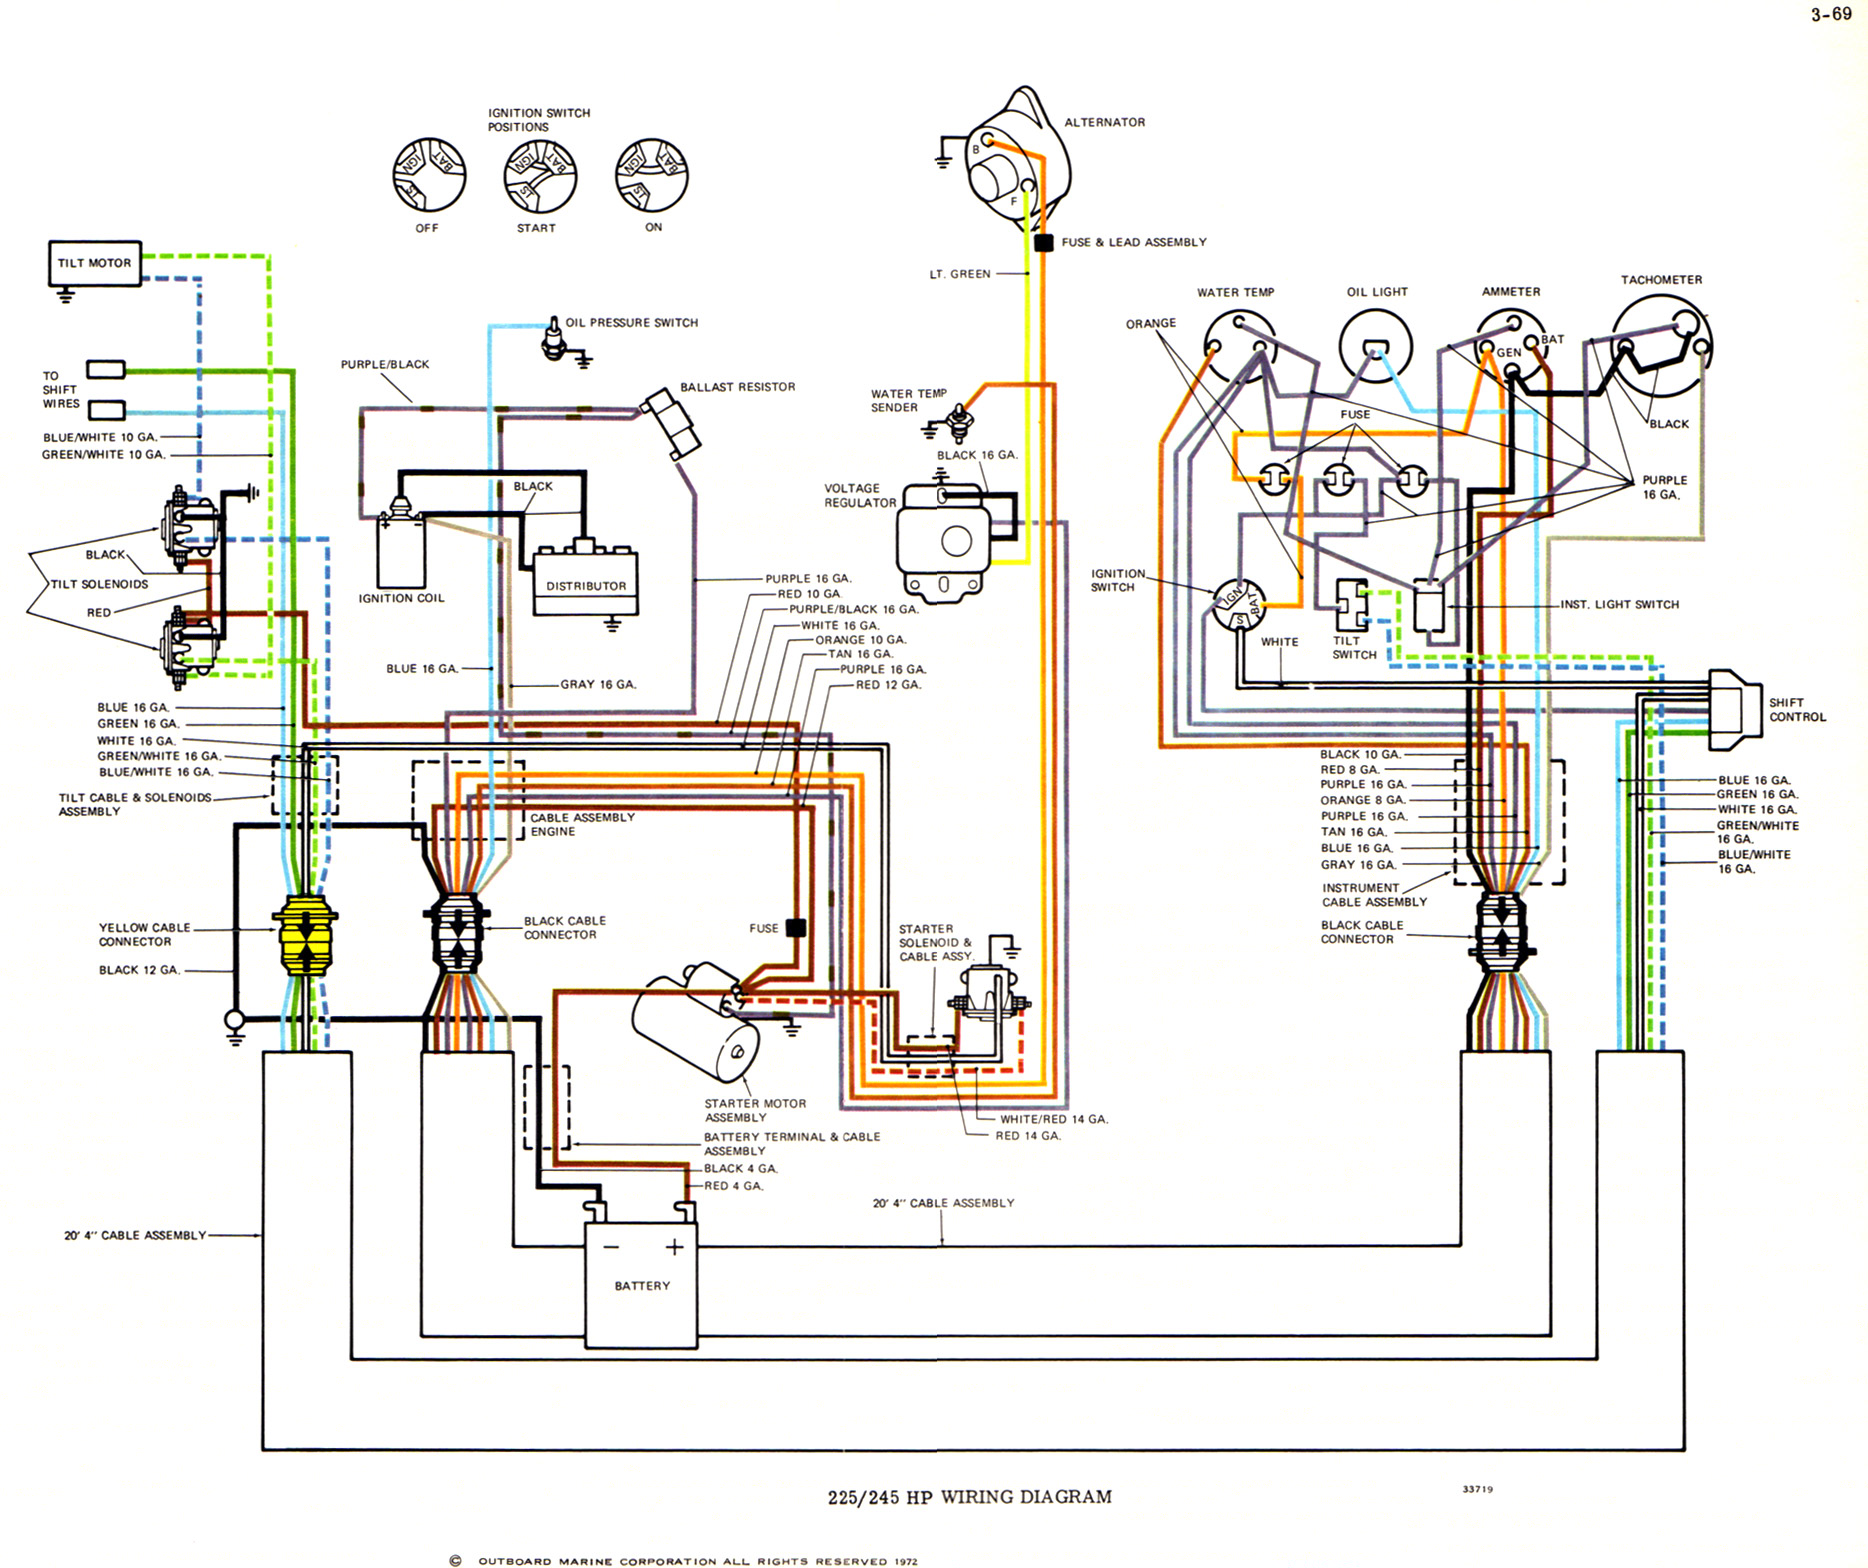 73_OMC_V8_all_big omc wiring harness diagram johmson wiring harness \u2022 wiring marine engine wiring harness at gsmx.co